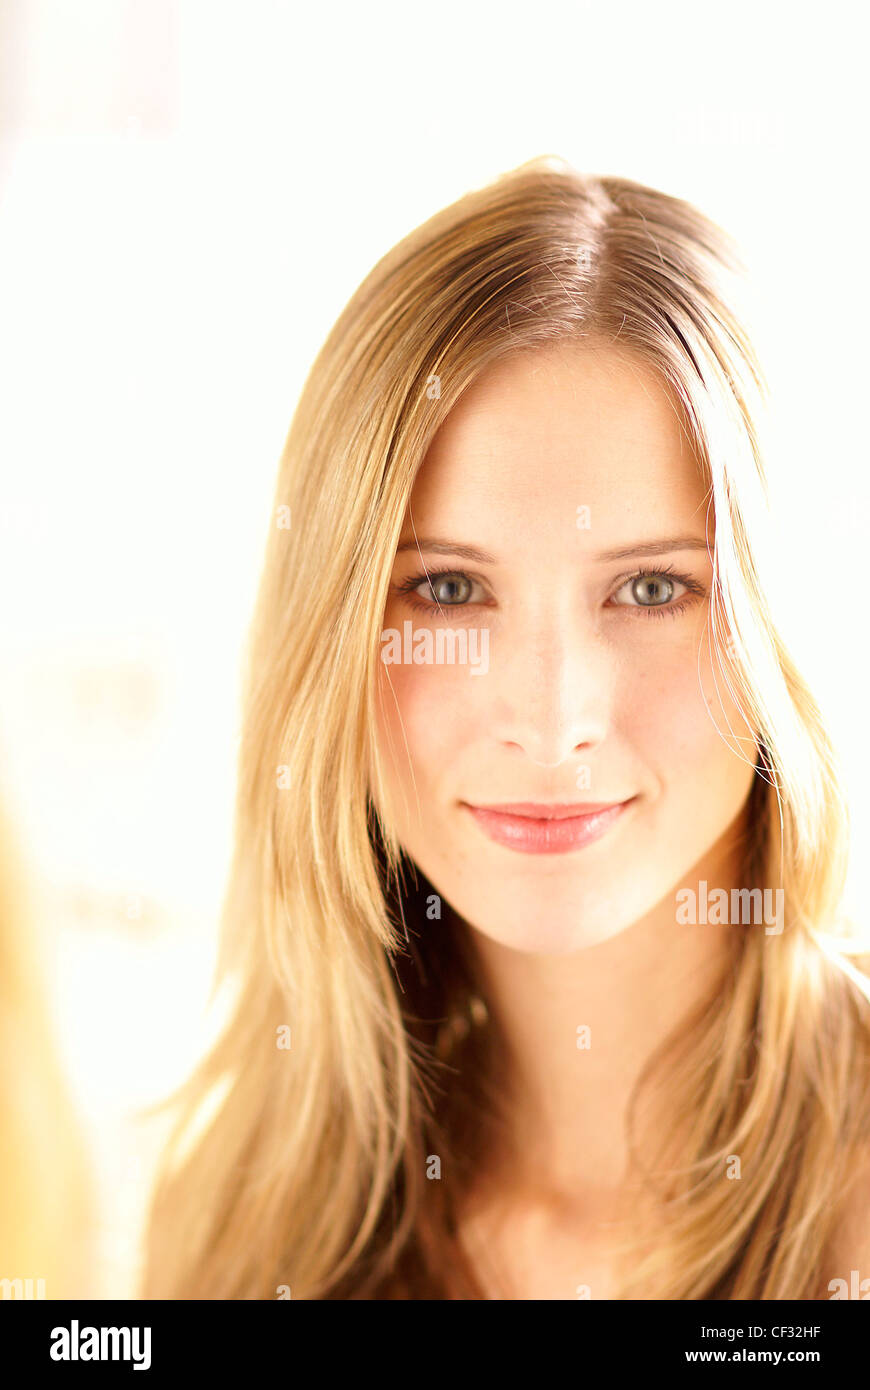 Female with long blonde hair worn loose, clear fair skin, wearing natural make up, looking at the camera and smiling - Stock Image